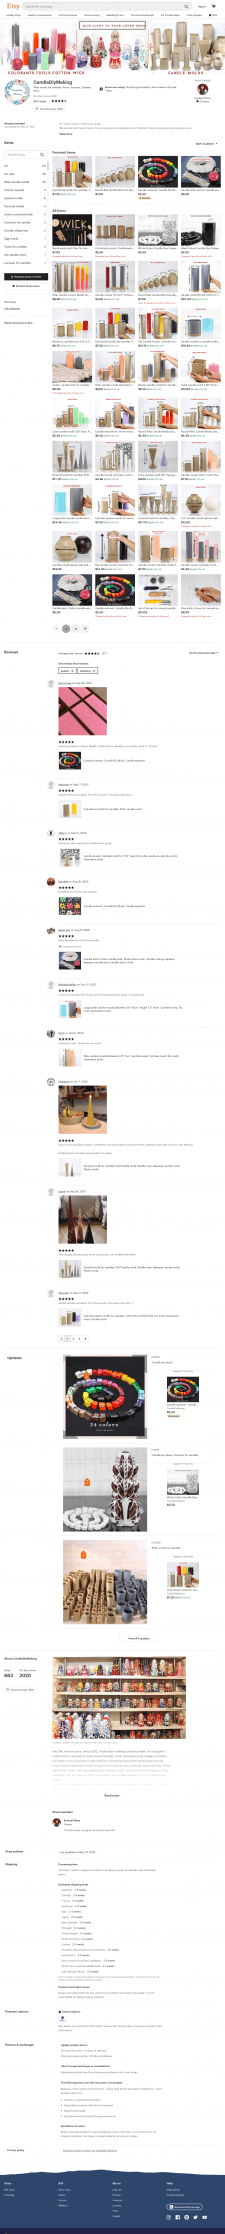 Pillar molds for candles, Prism, Pyramid, Sphere